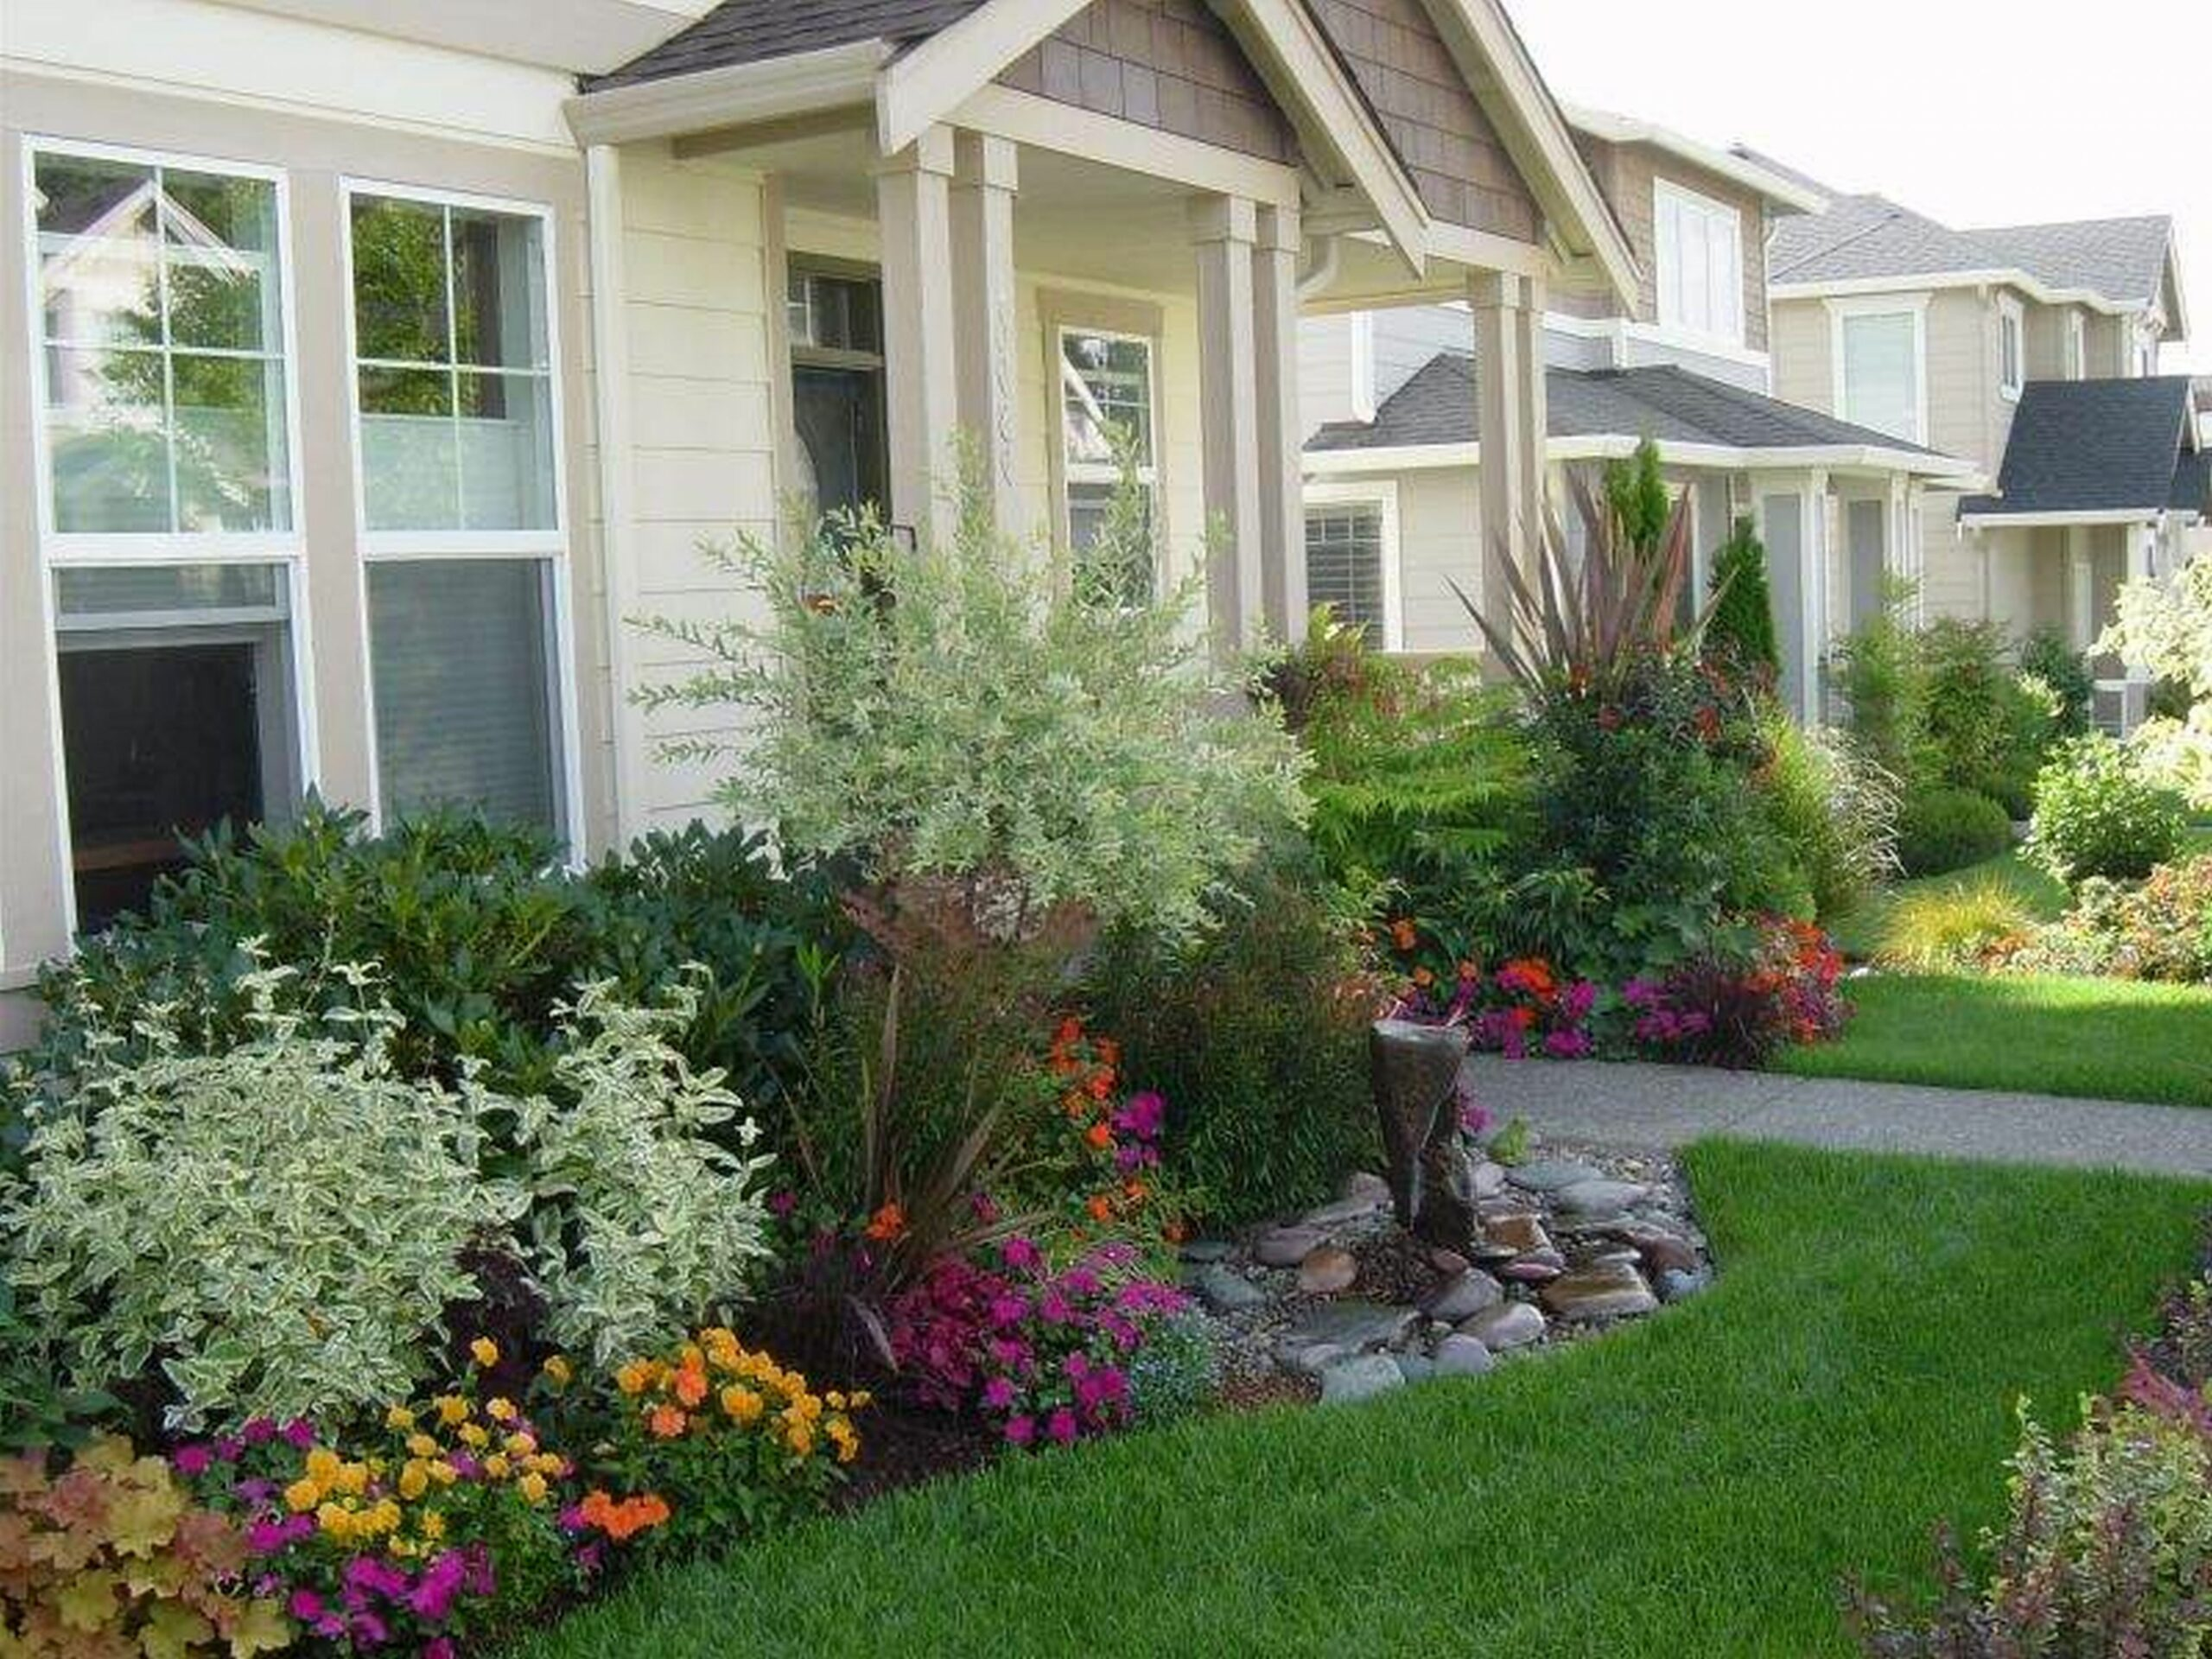 Garden Ideas For The Front Of The House | Garden front of house ...